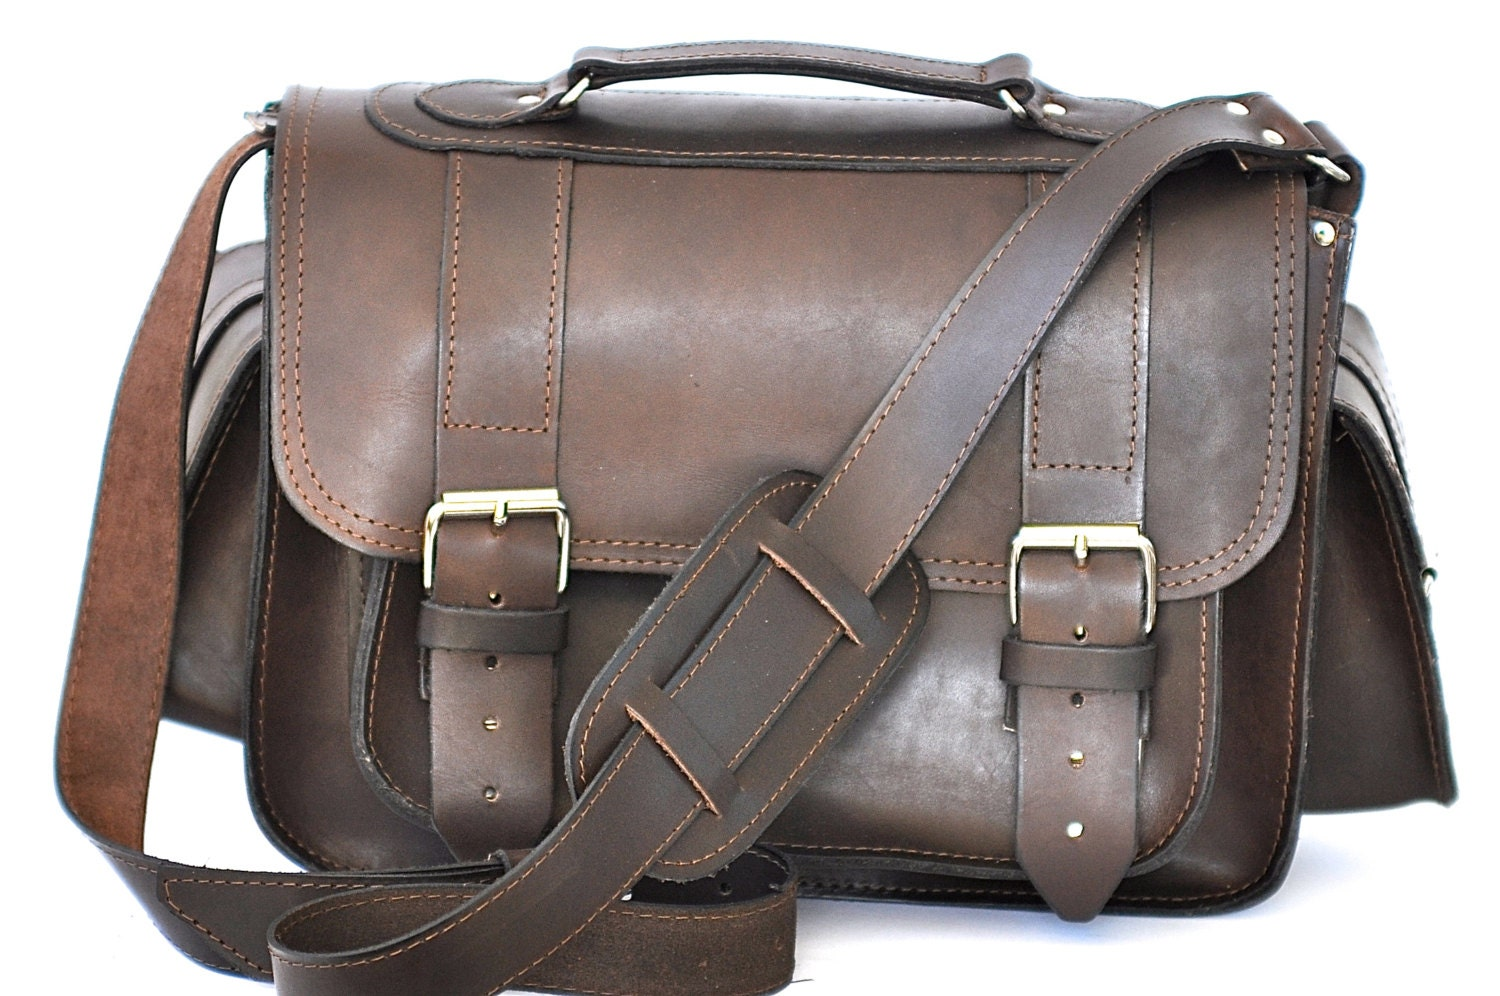 Elegant Youll Find Waxed Canvas Bags, Camera Backpacks, Trailready Commuter Bags And Bags Designed With Women In Mind WP Standard Built The Leather Messenger Bag You Want At $295 The Bag Is Priced Accordin